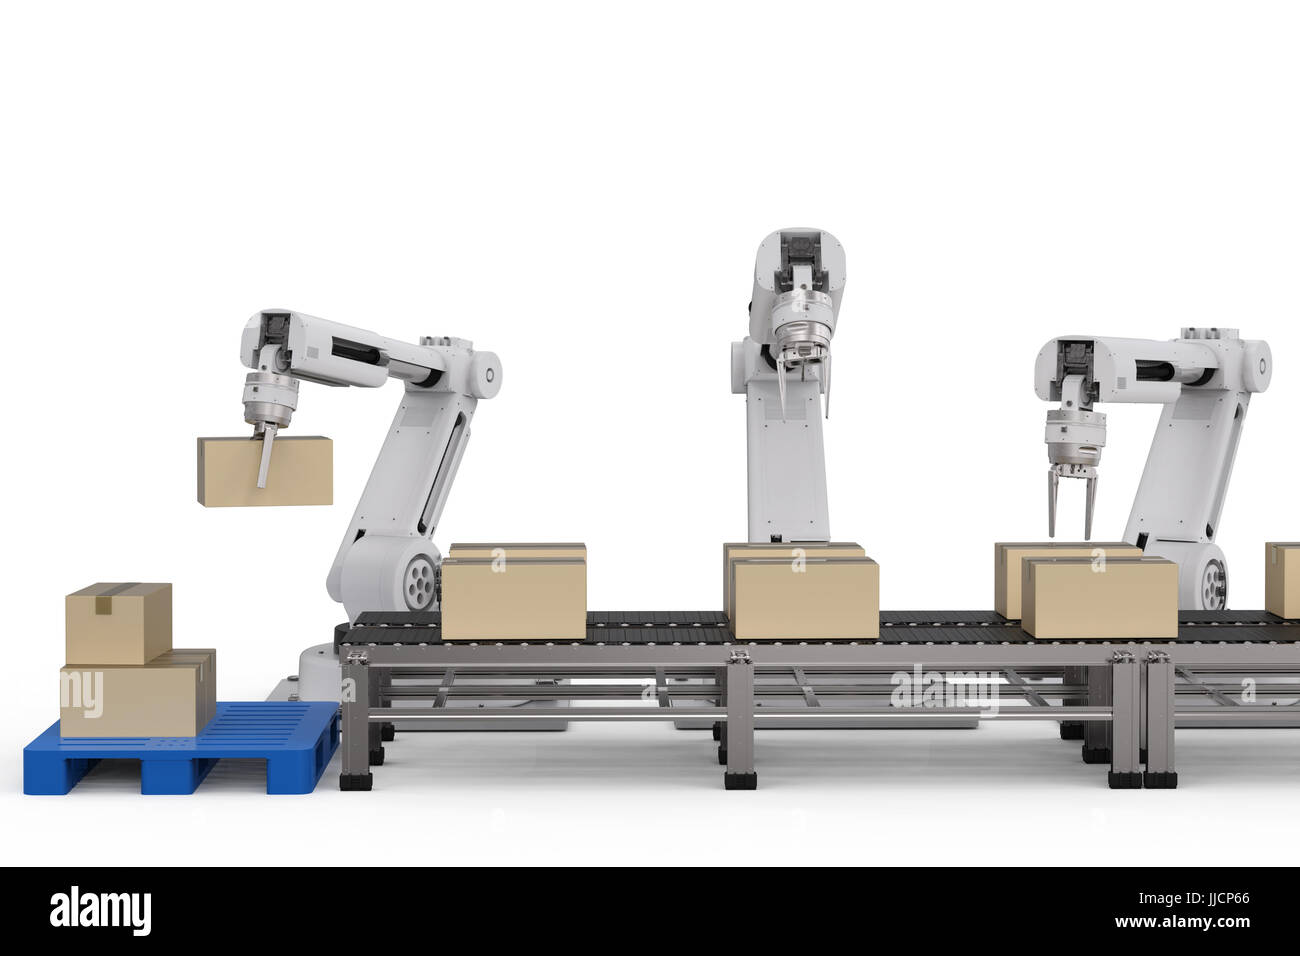 Robotic Arms Cut Out Stock Images & Pictures - Alamy